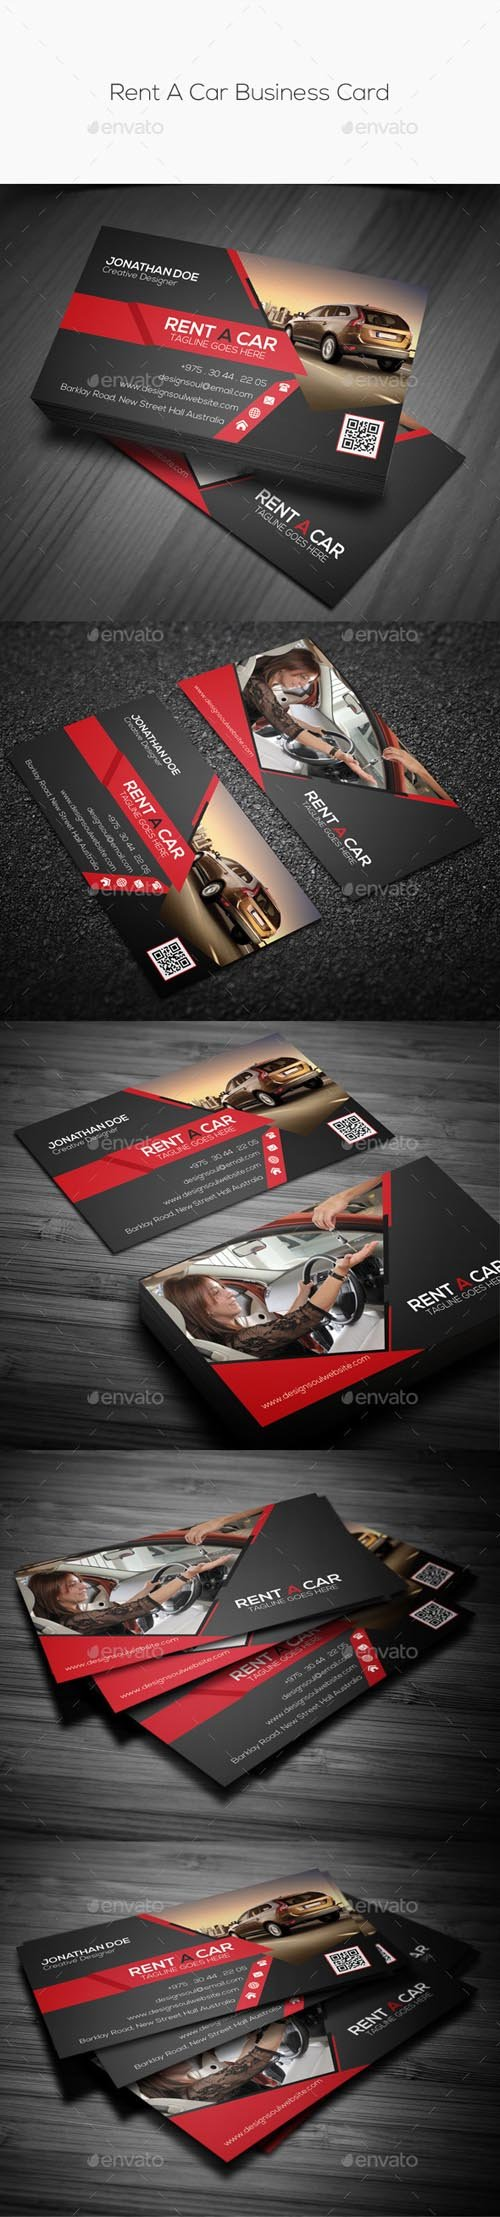 Rent A Car Business Card 10069504